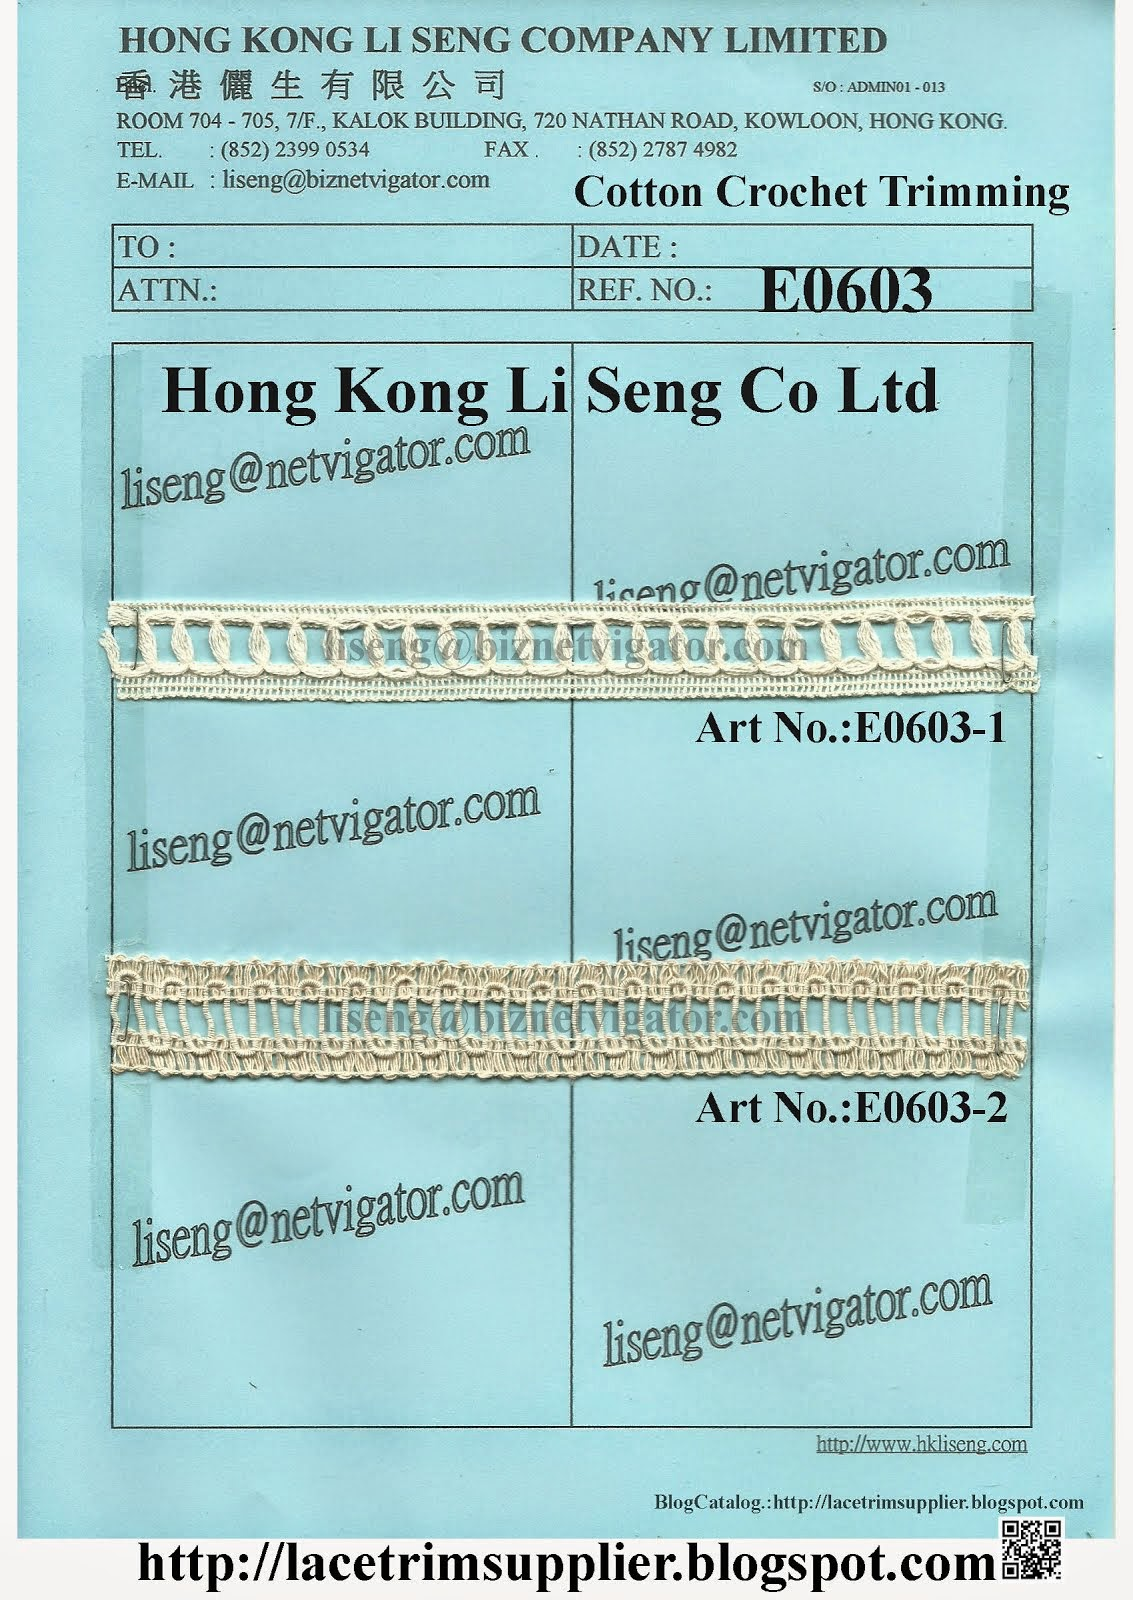 Cotton Crochet Trimming Supplier - Hong Kong Li Seng Co Ltd